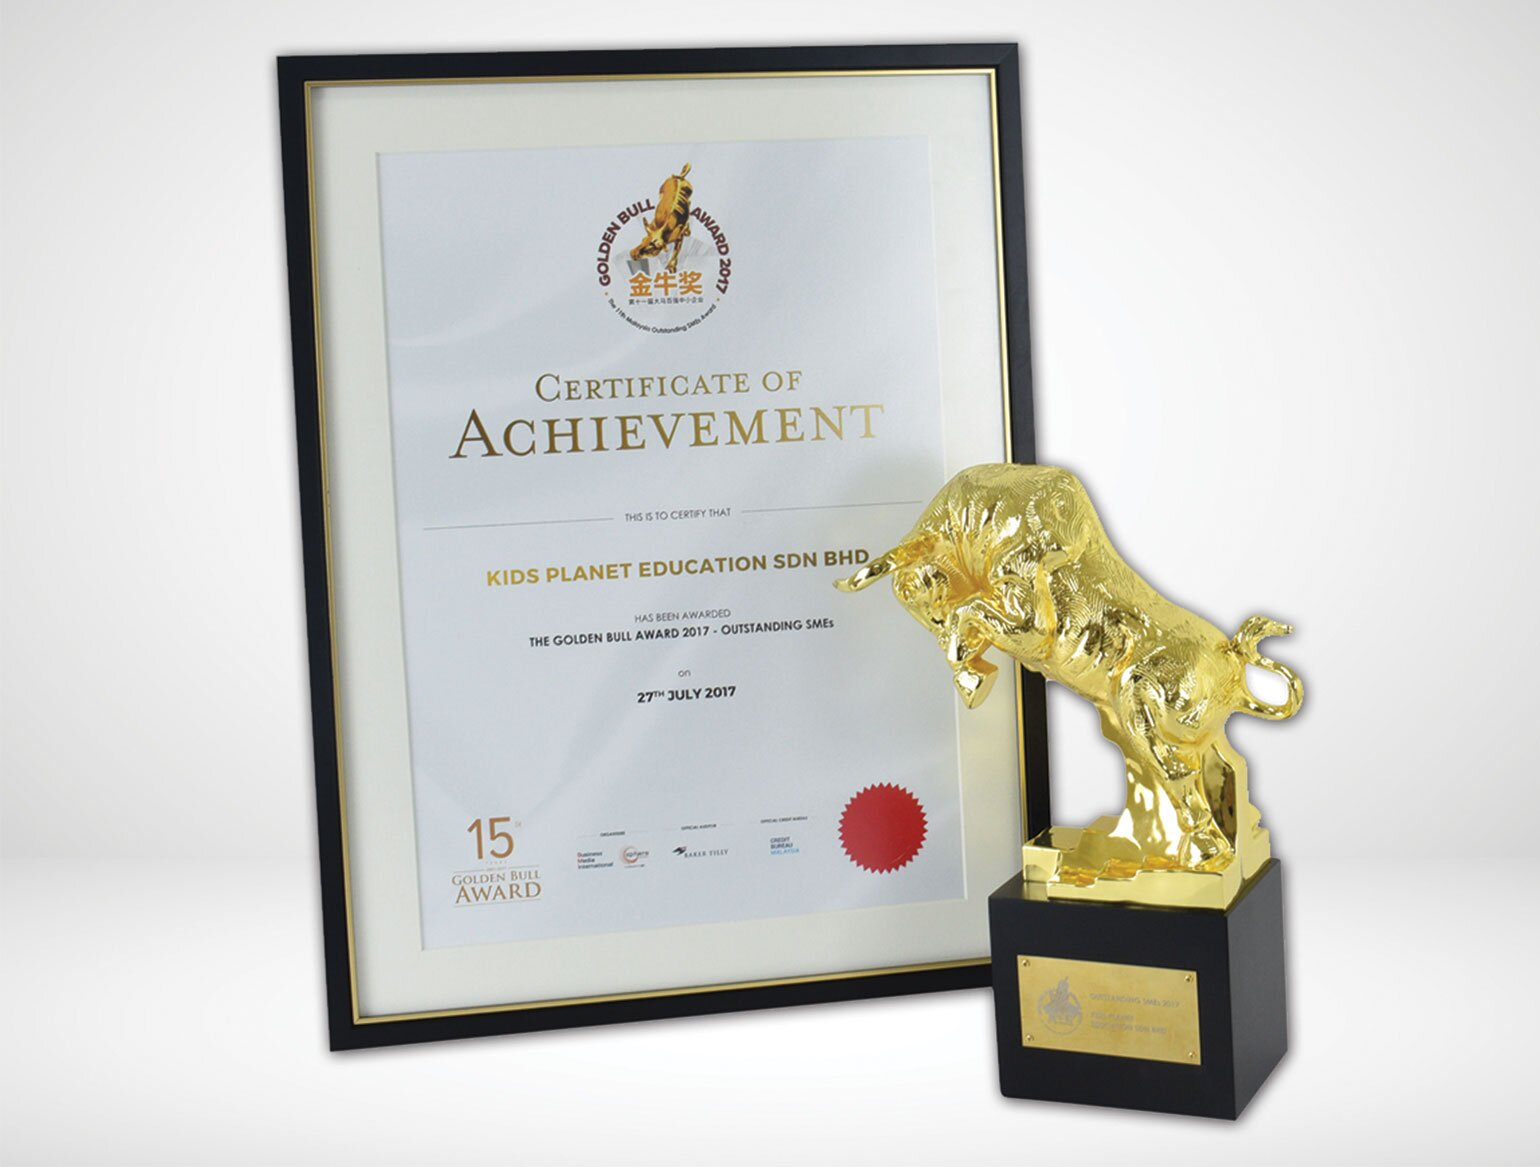 The Golden Bull Award 2017